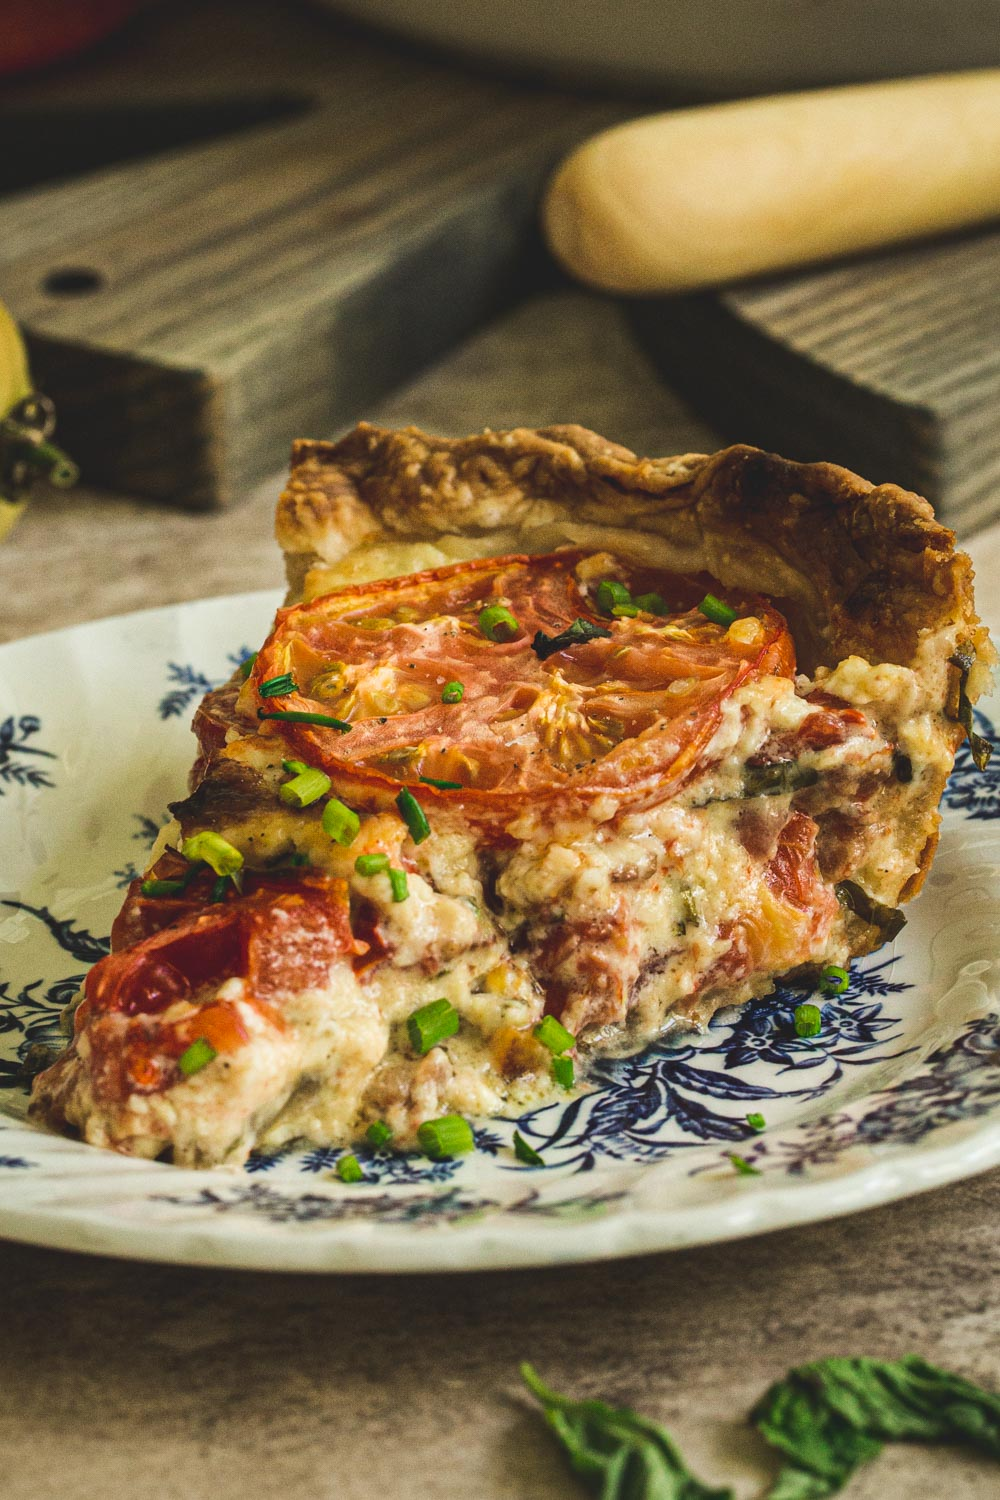 slice of tomato pie topped with chives on a blue and white plate